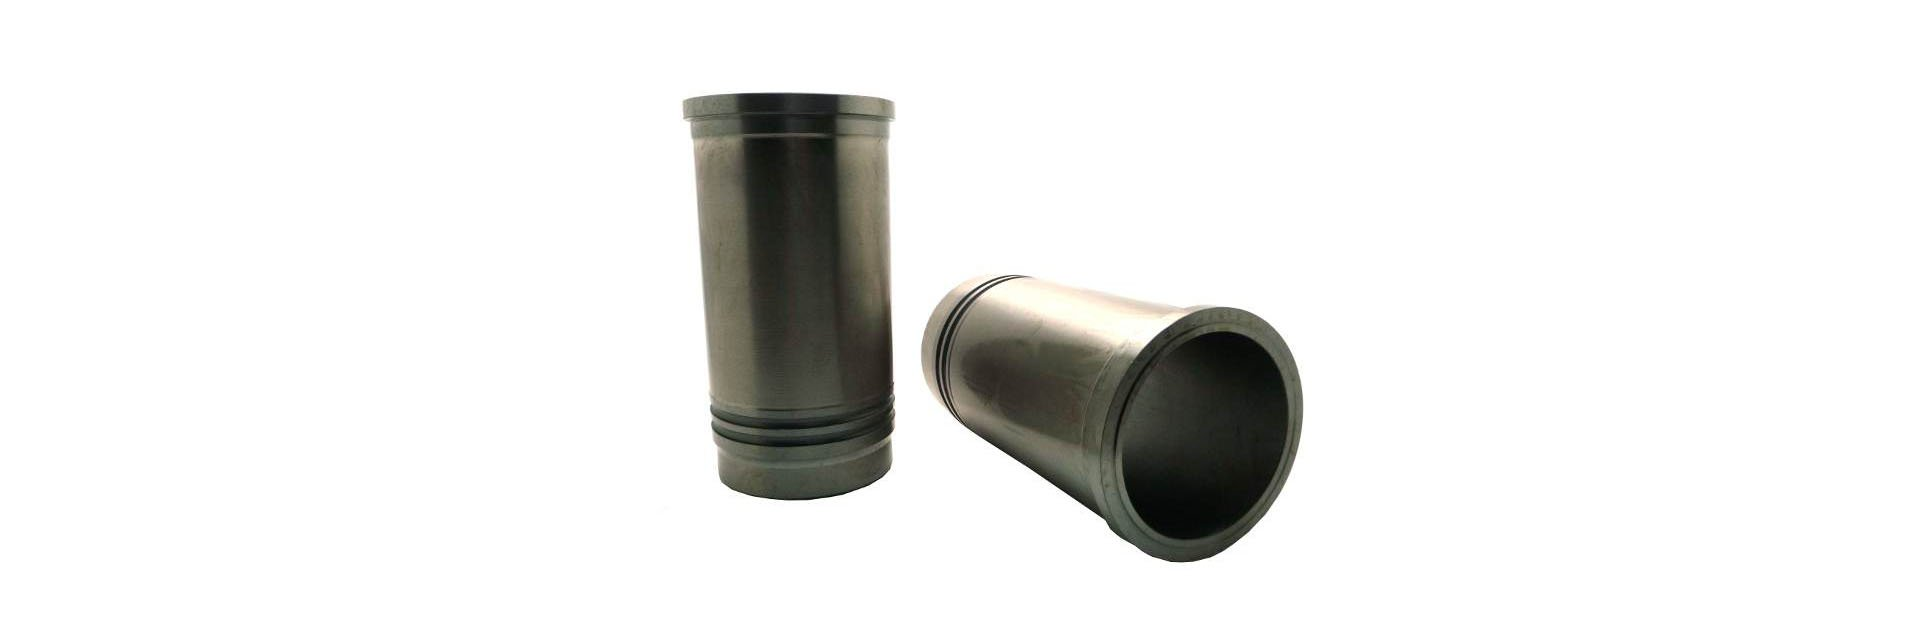 Cylinder liners and complete sets